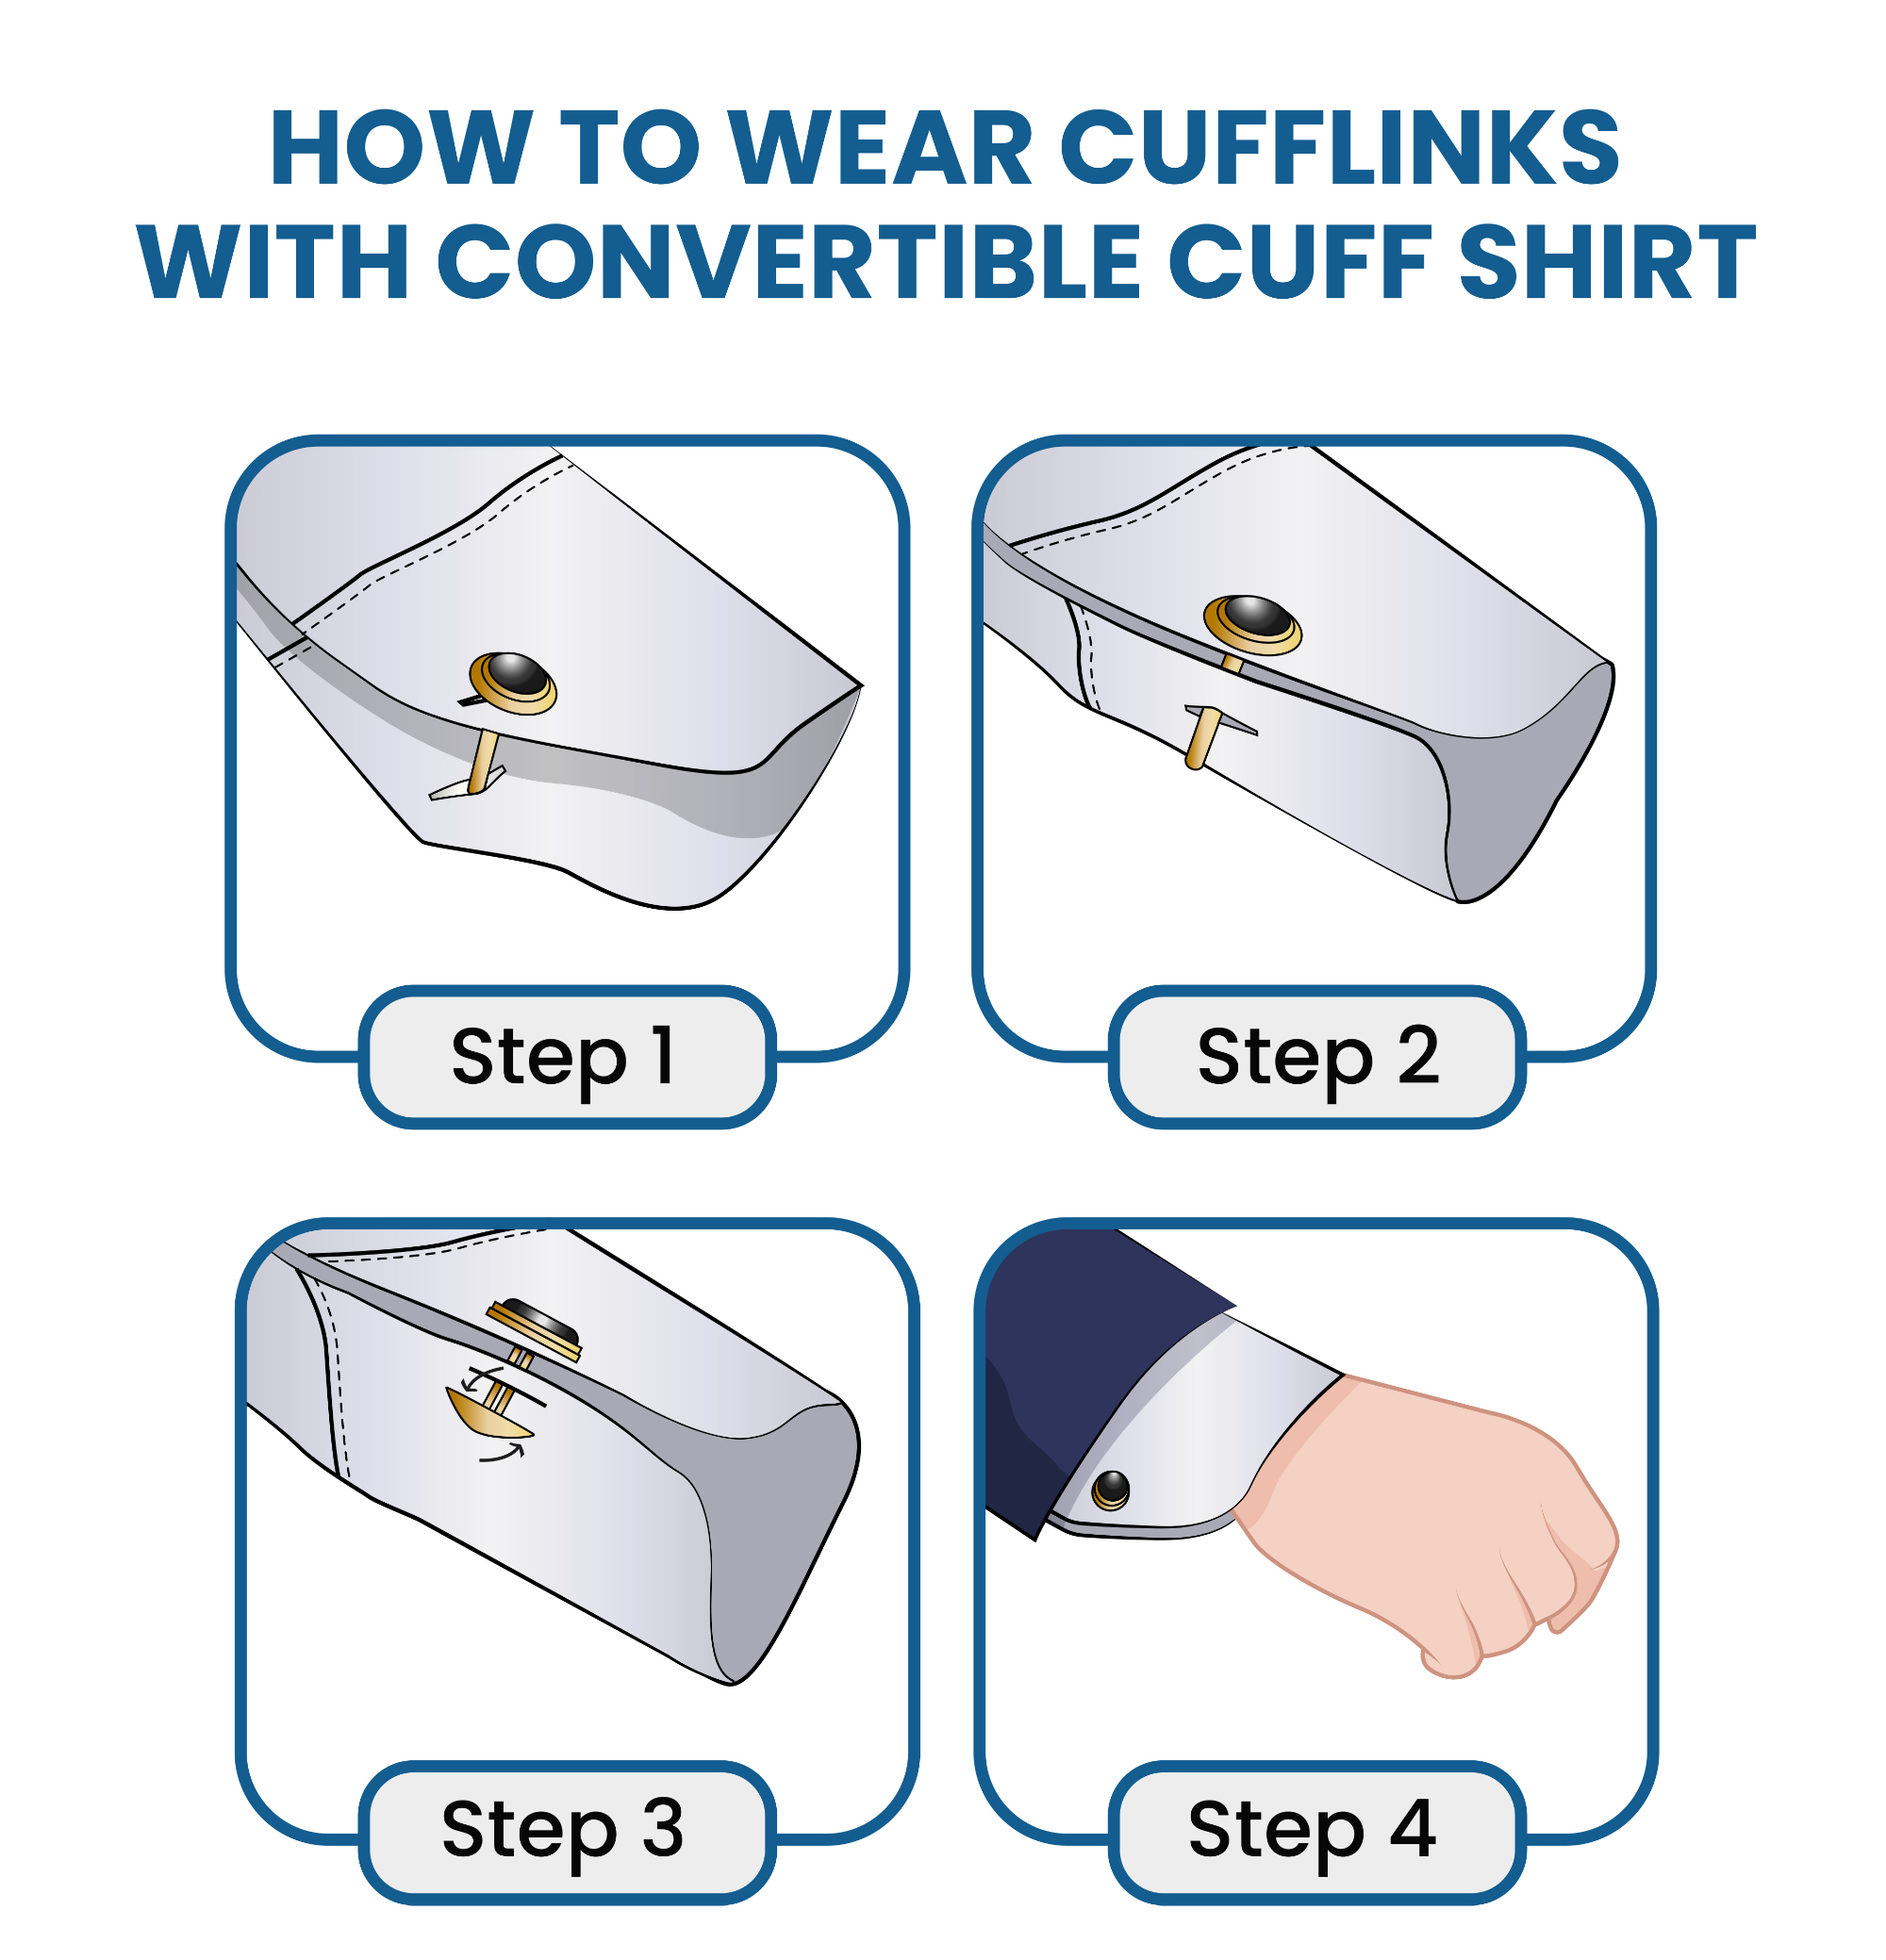 How to wear cufflinks with a convertible cuff shirt